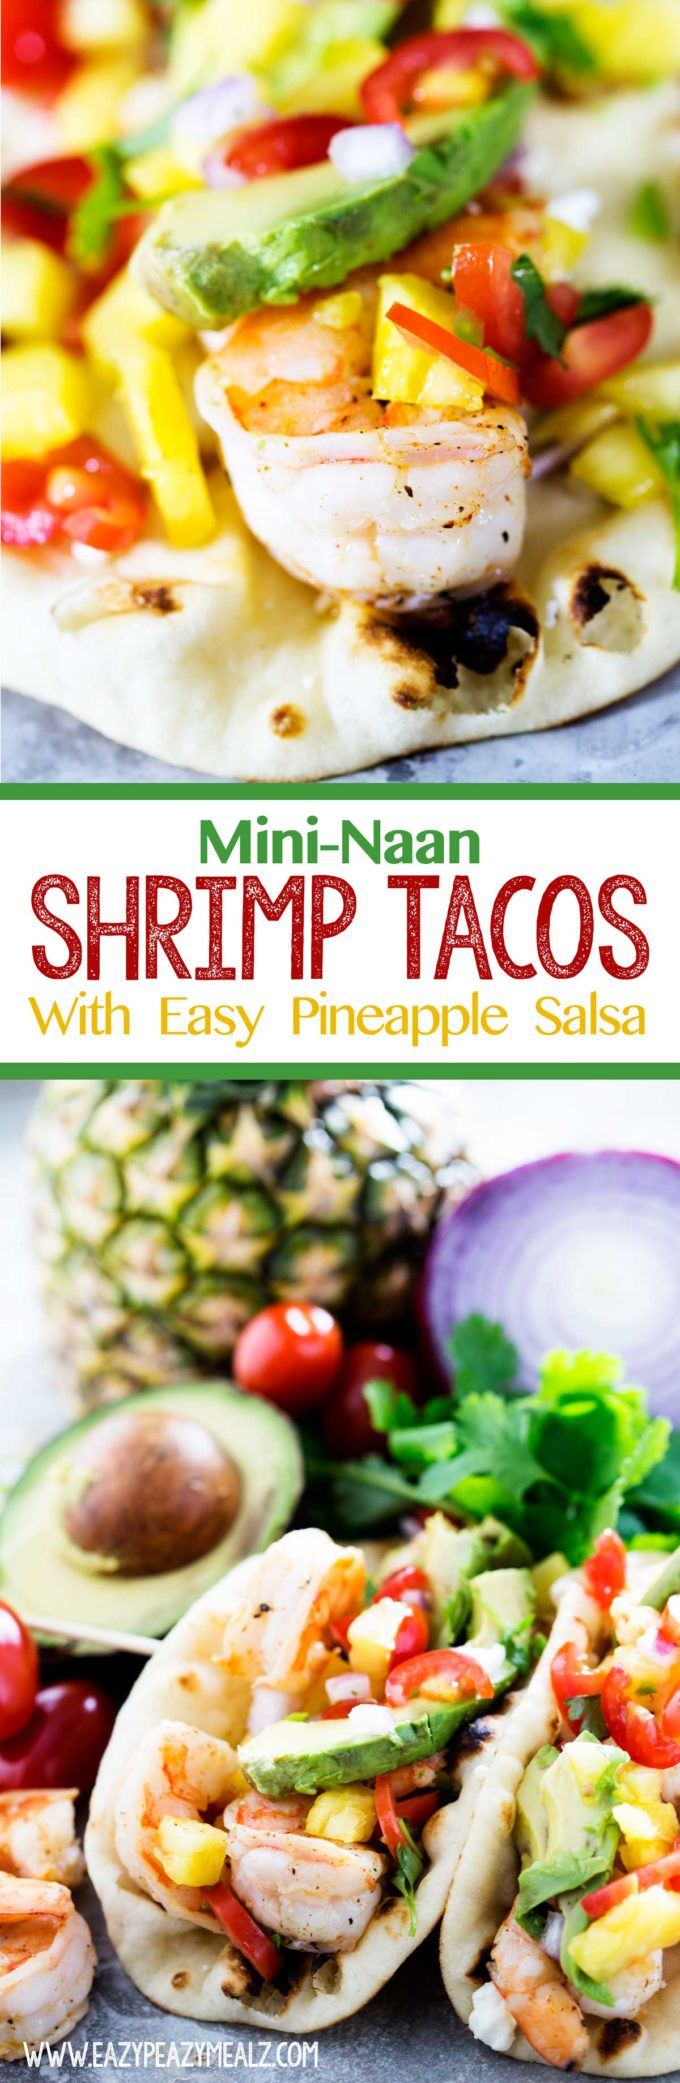 Delicious and easy shrimp tacos with pineapple salsa in a mini naan taco shell.